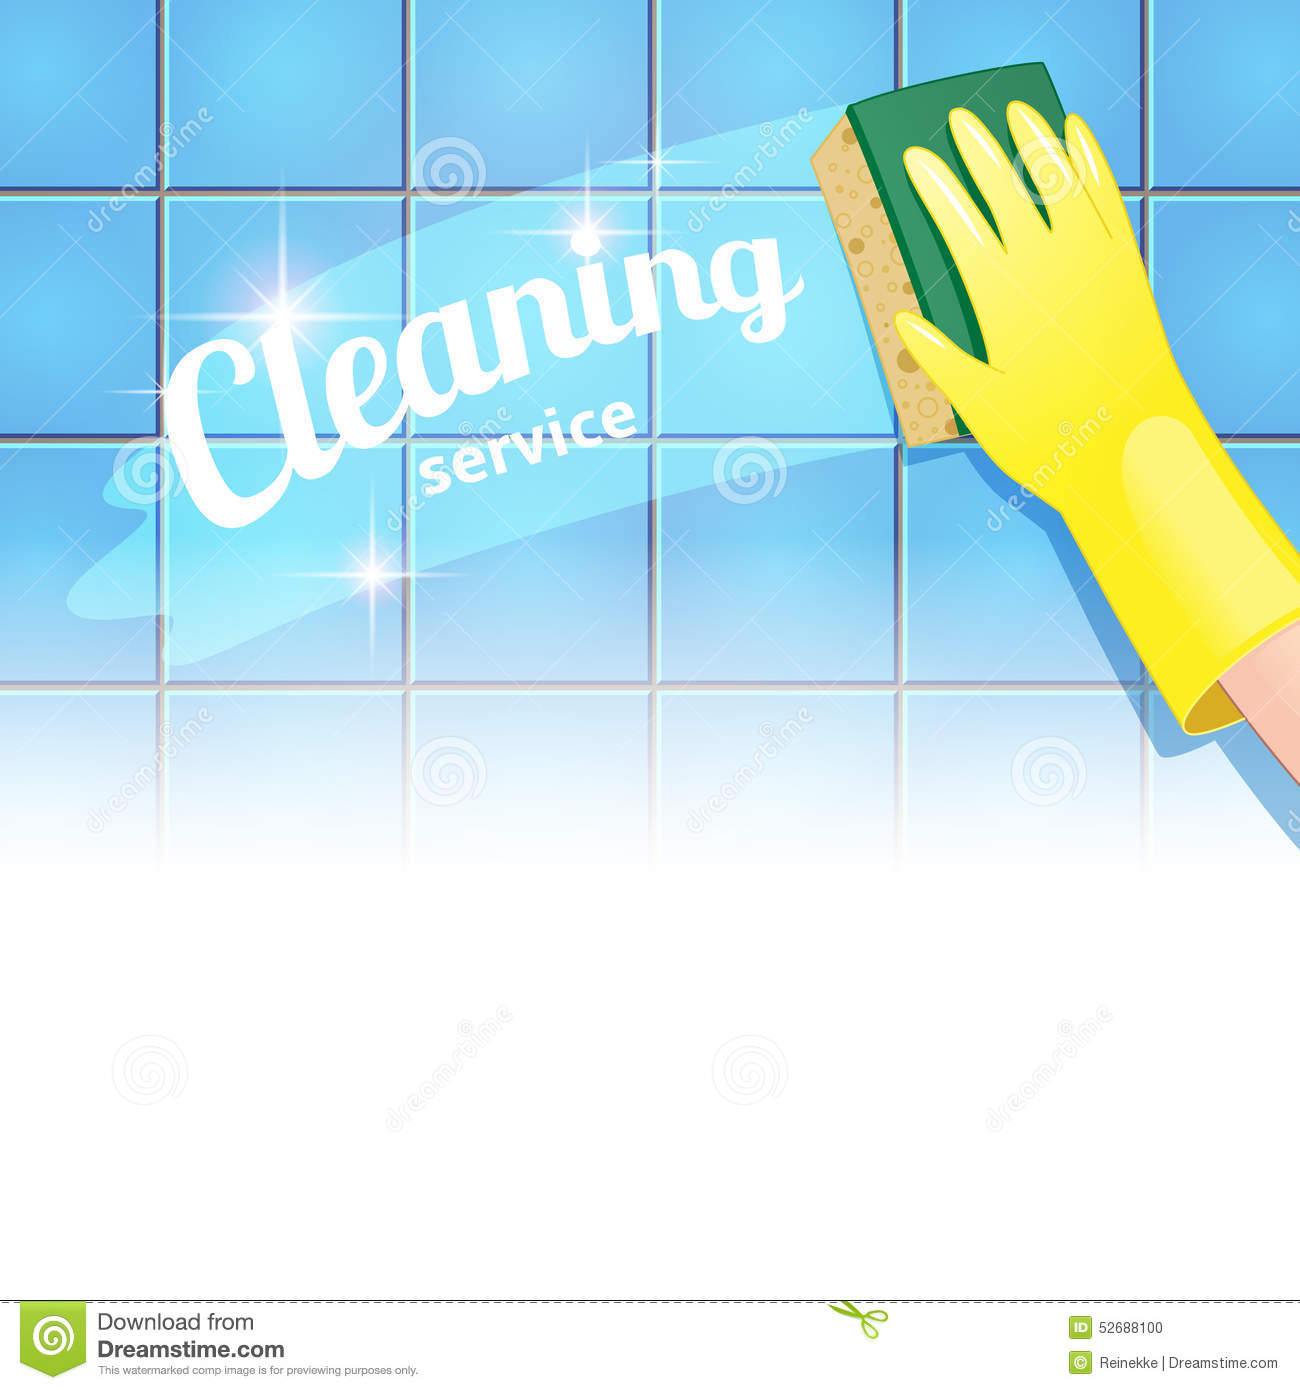 cleaning-service-concept-background-hand-yellow-glove-cleans-blue-tile-52688100.jpg